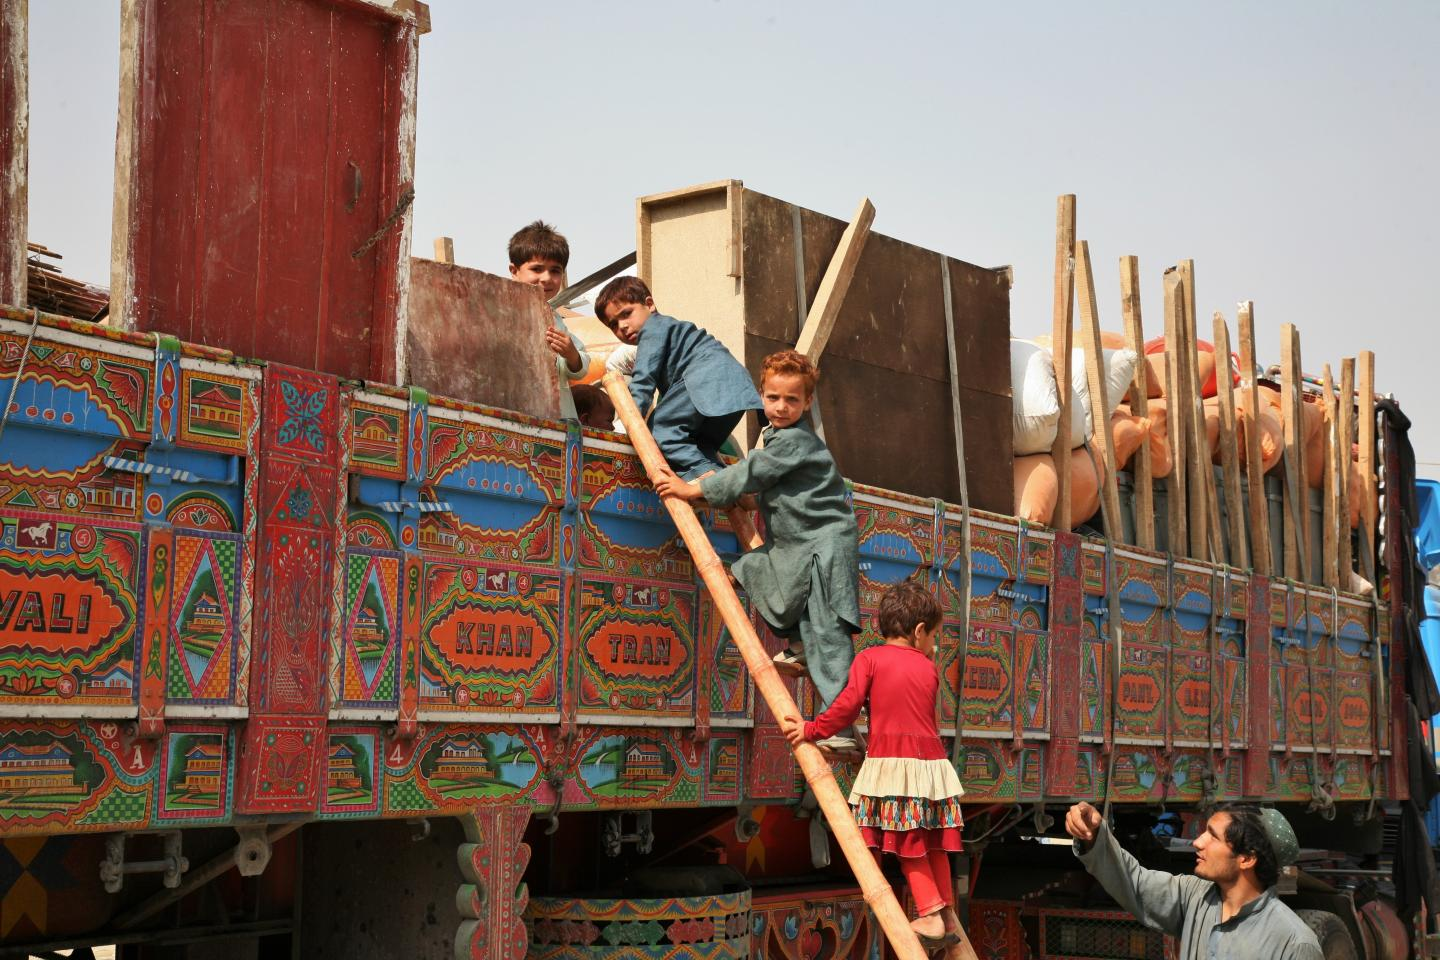 Afghan returnee children use a wooden ladder to board a truck near the Torkham border crossing between Afghanistan and Pakistan.